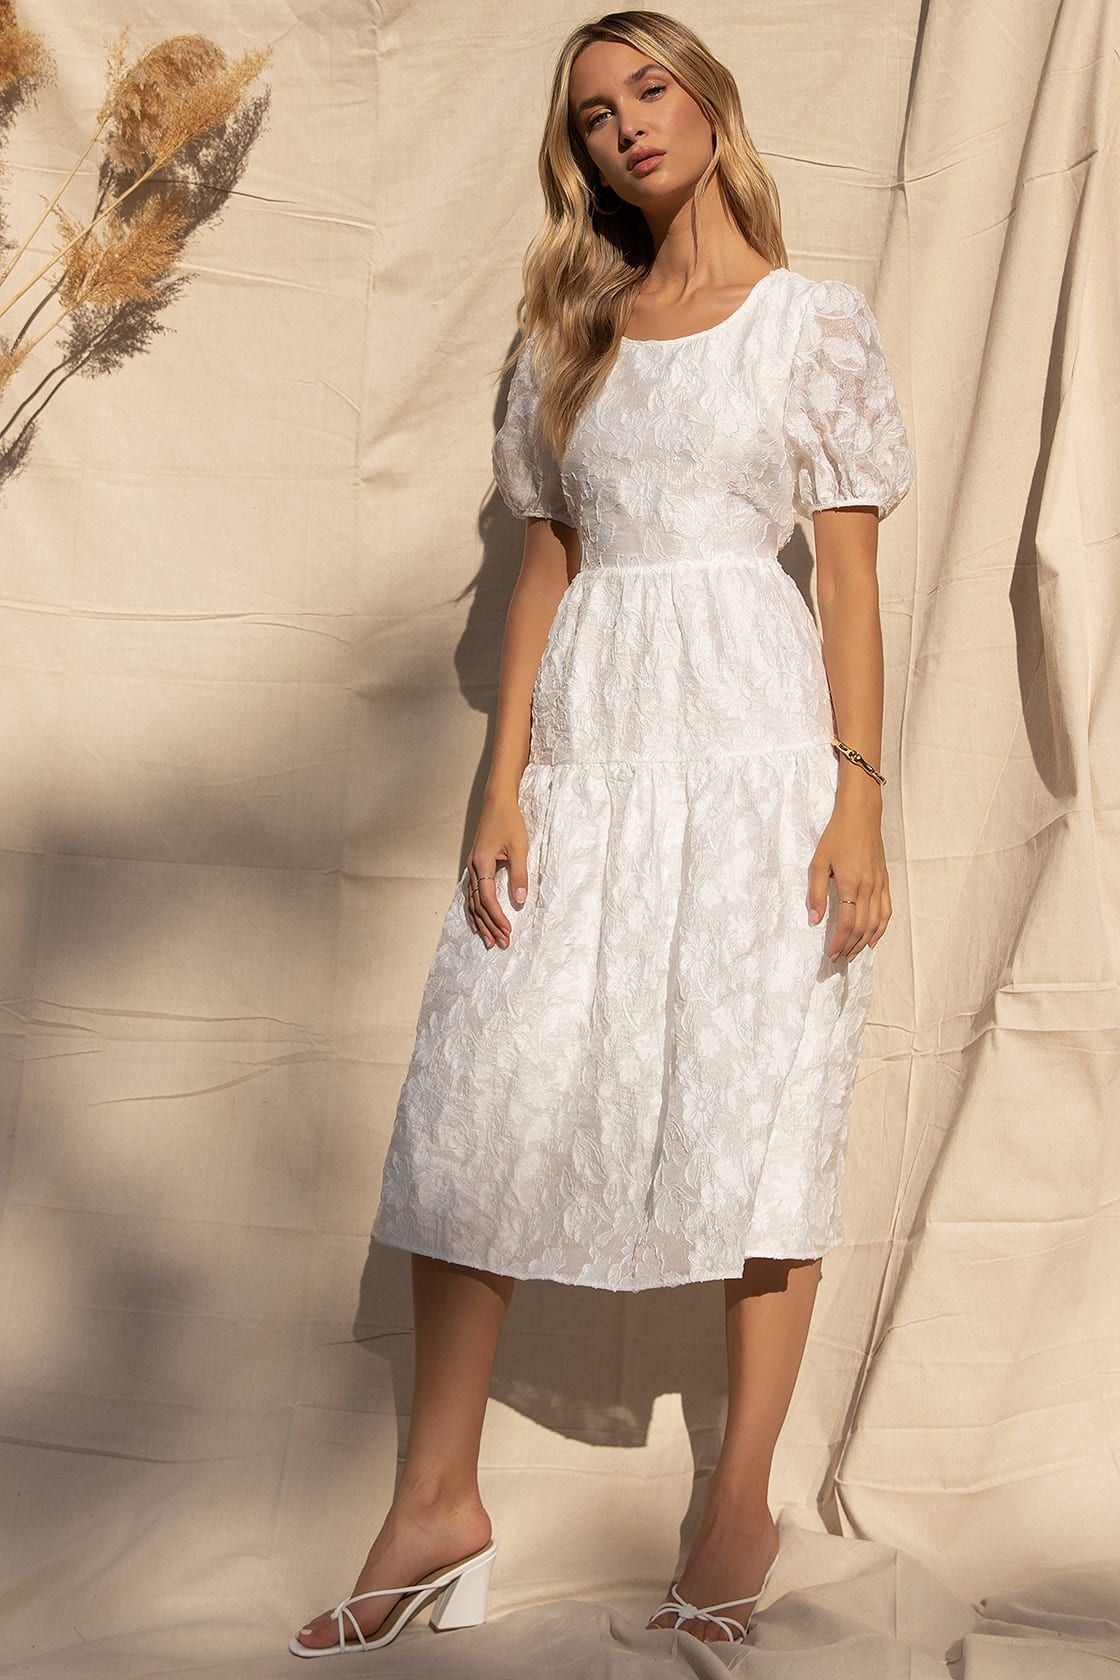 Choose Bliss White Puff Sleeve Tiered Midi Dress White Short Dress Tiered Midi Dress Midi Dress With Sleeves [ 1680 x 1120 Pixel ]